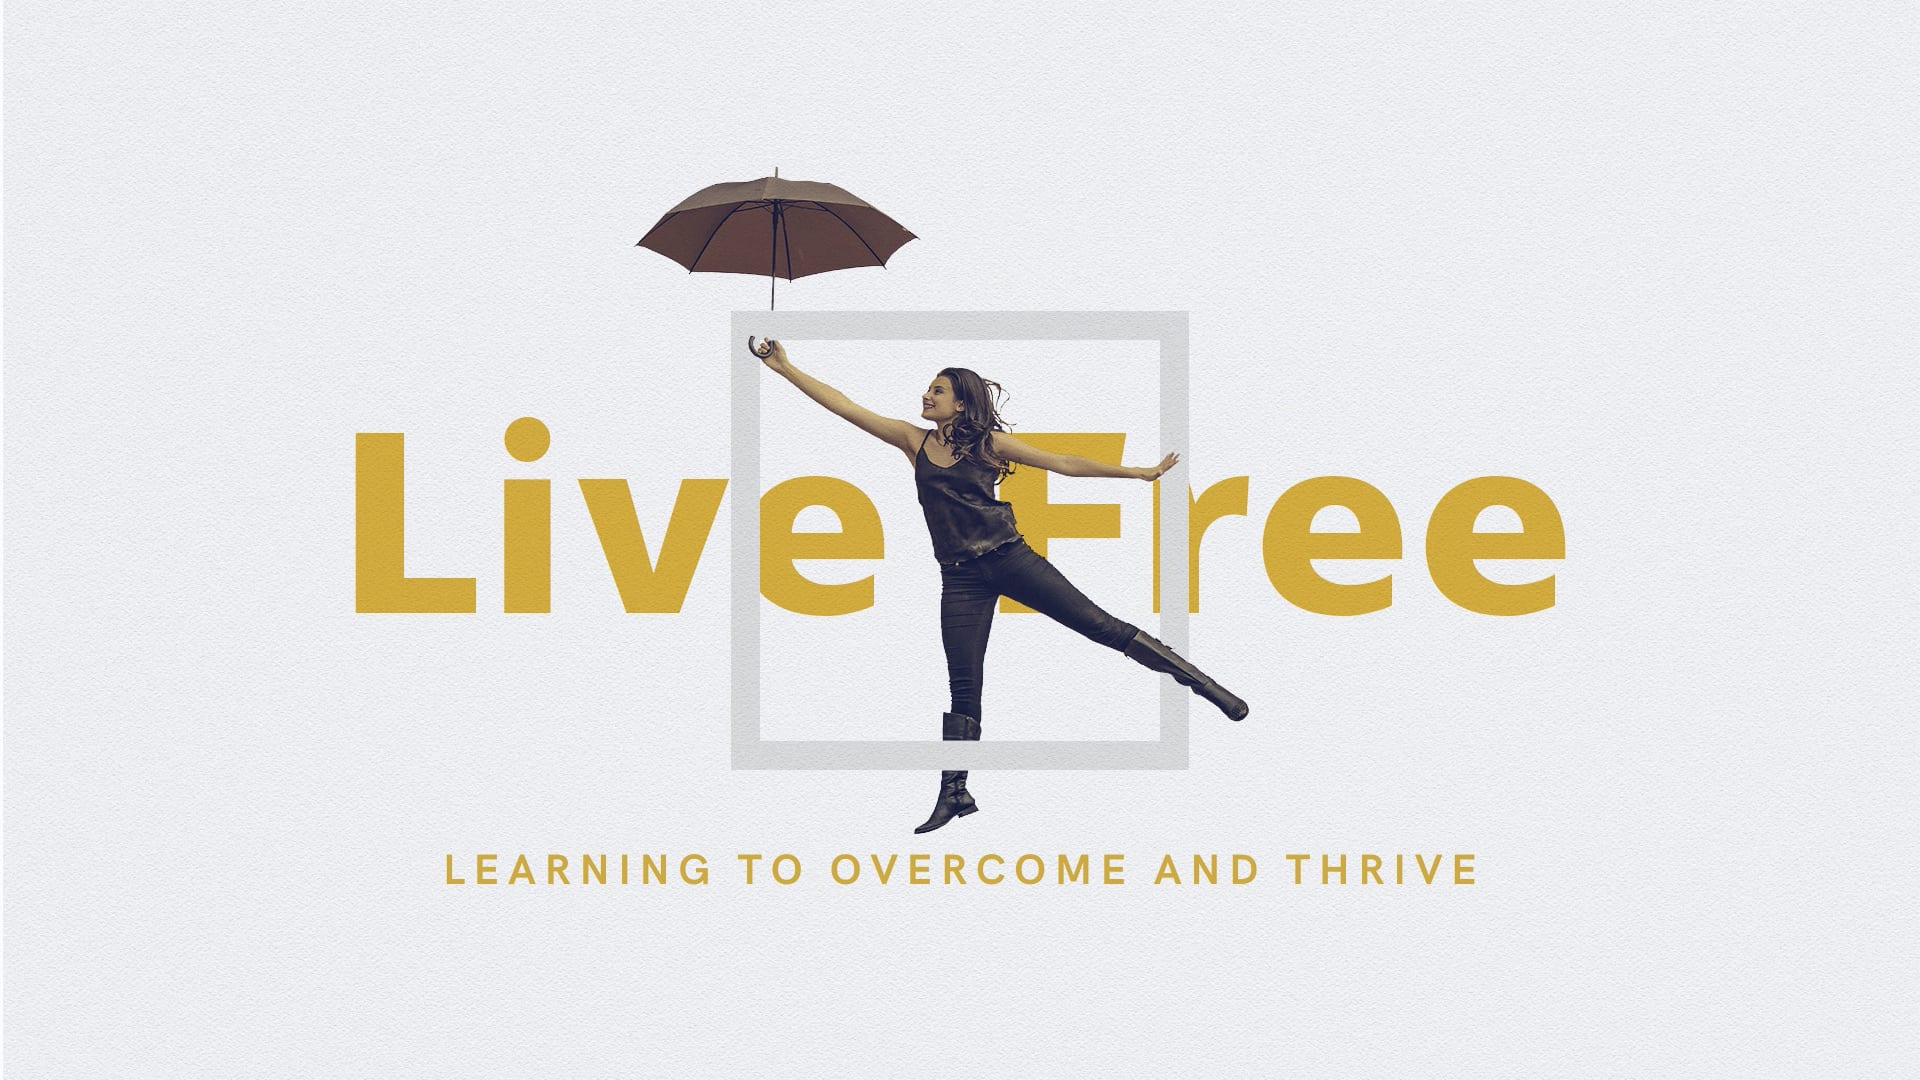 LIVE FREE : Overcome Your Past